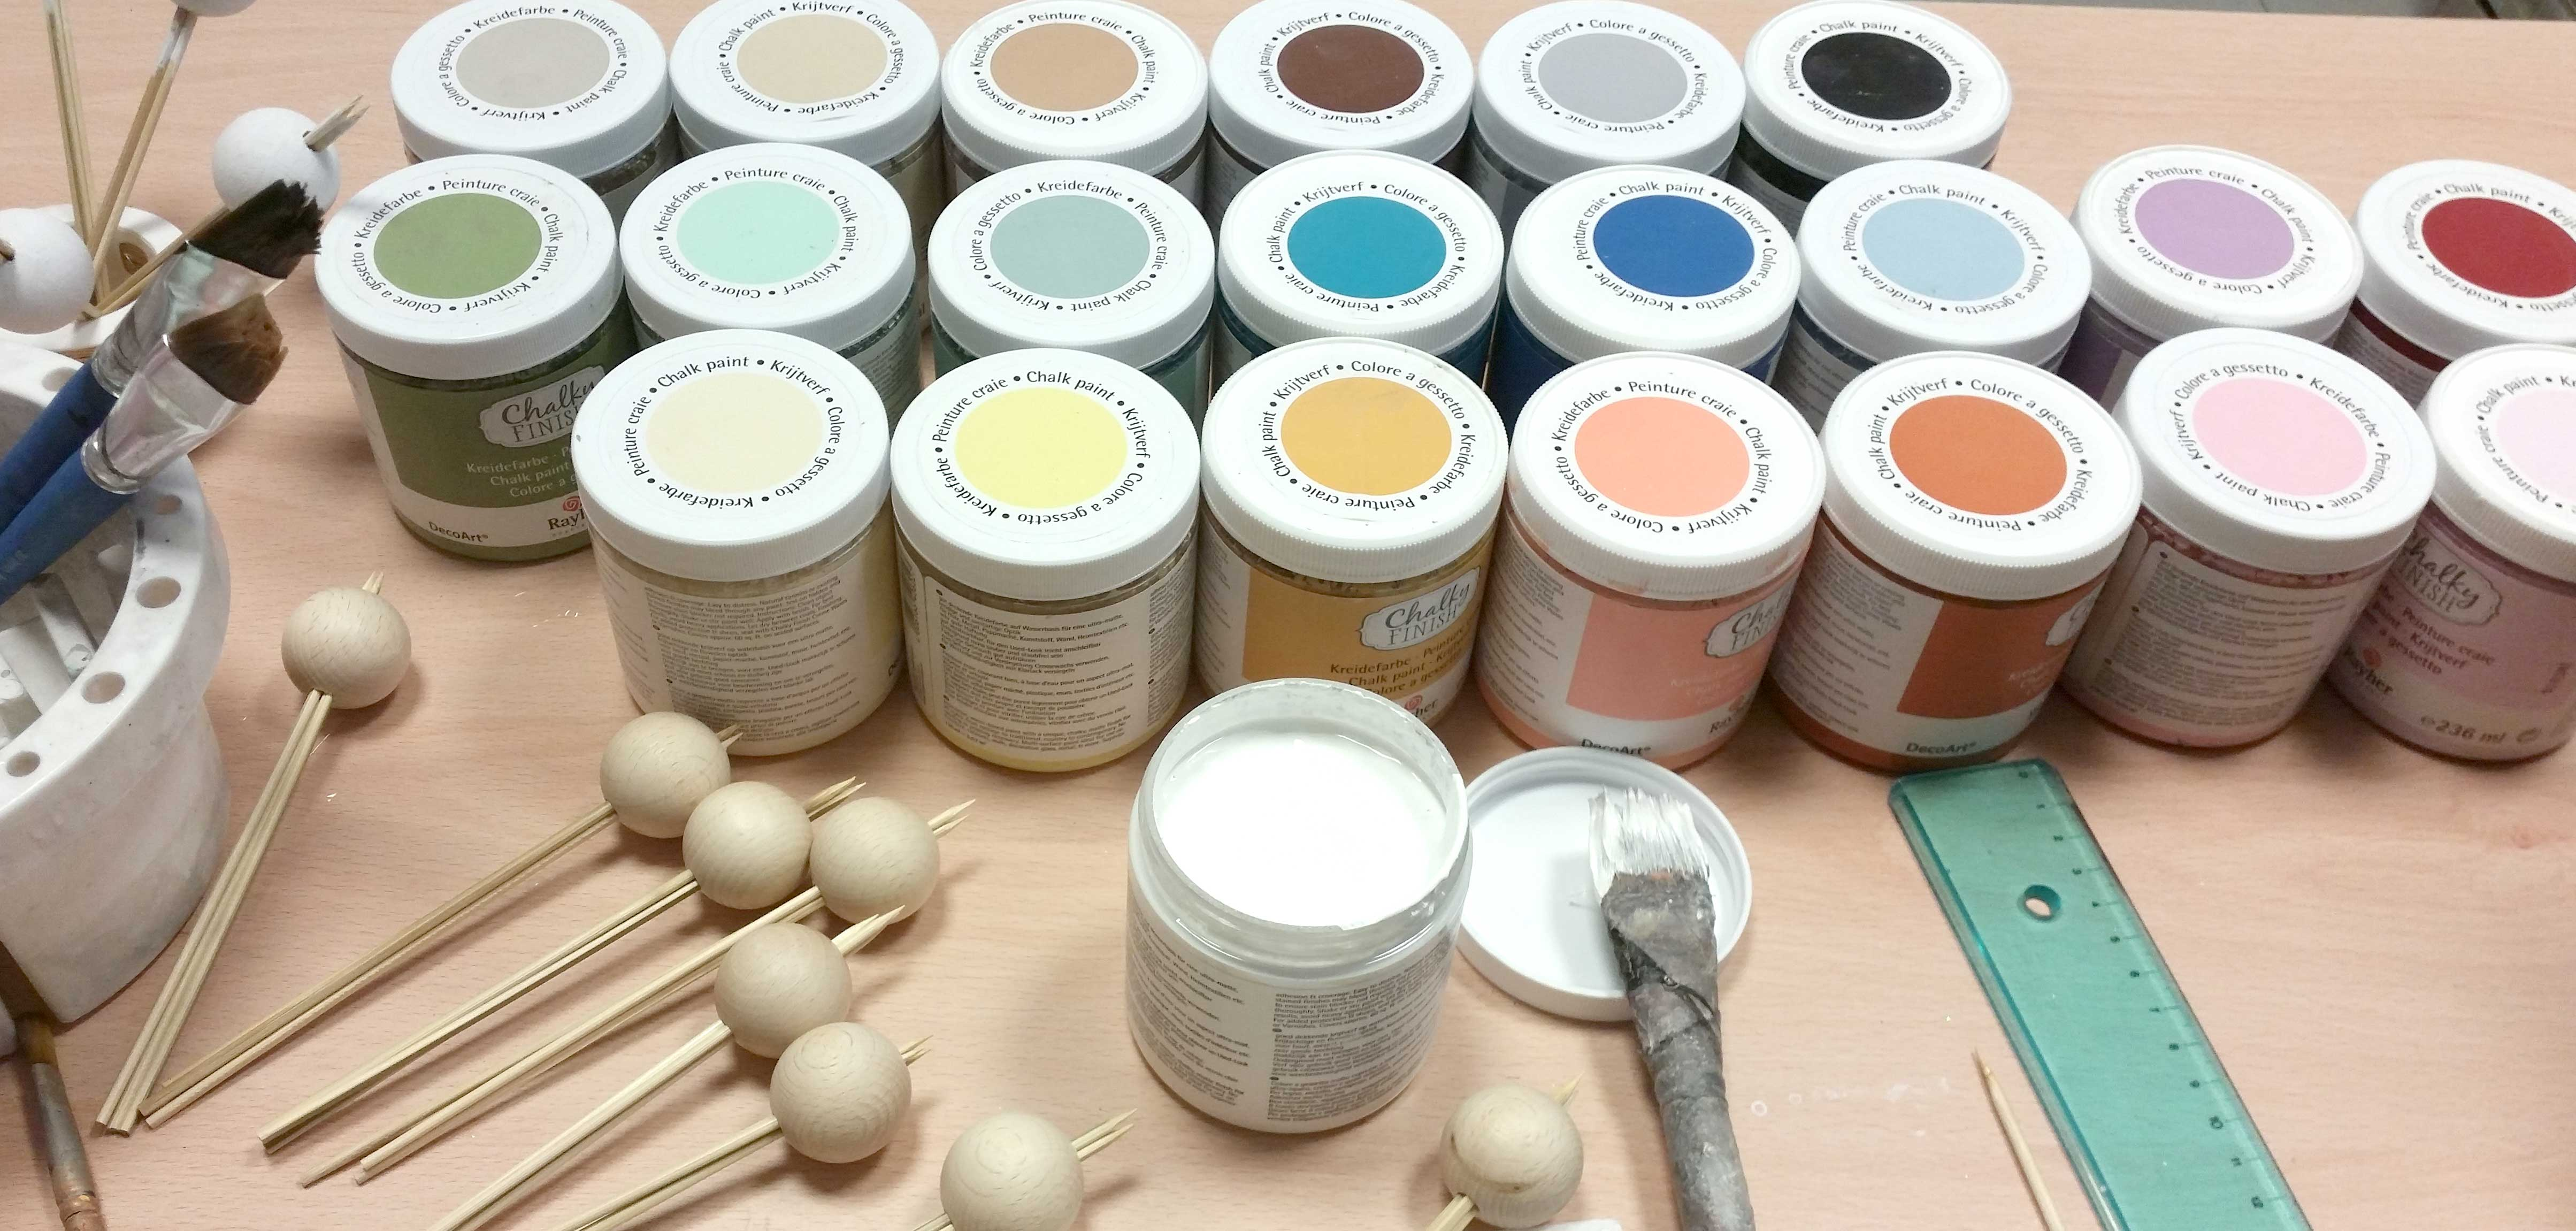 colori a gesso rayher hammeley creare insieme